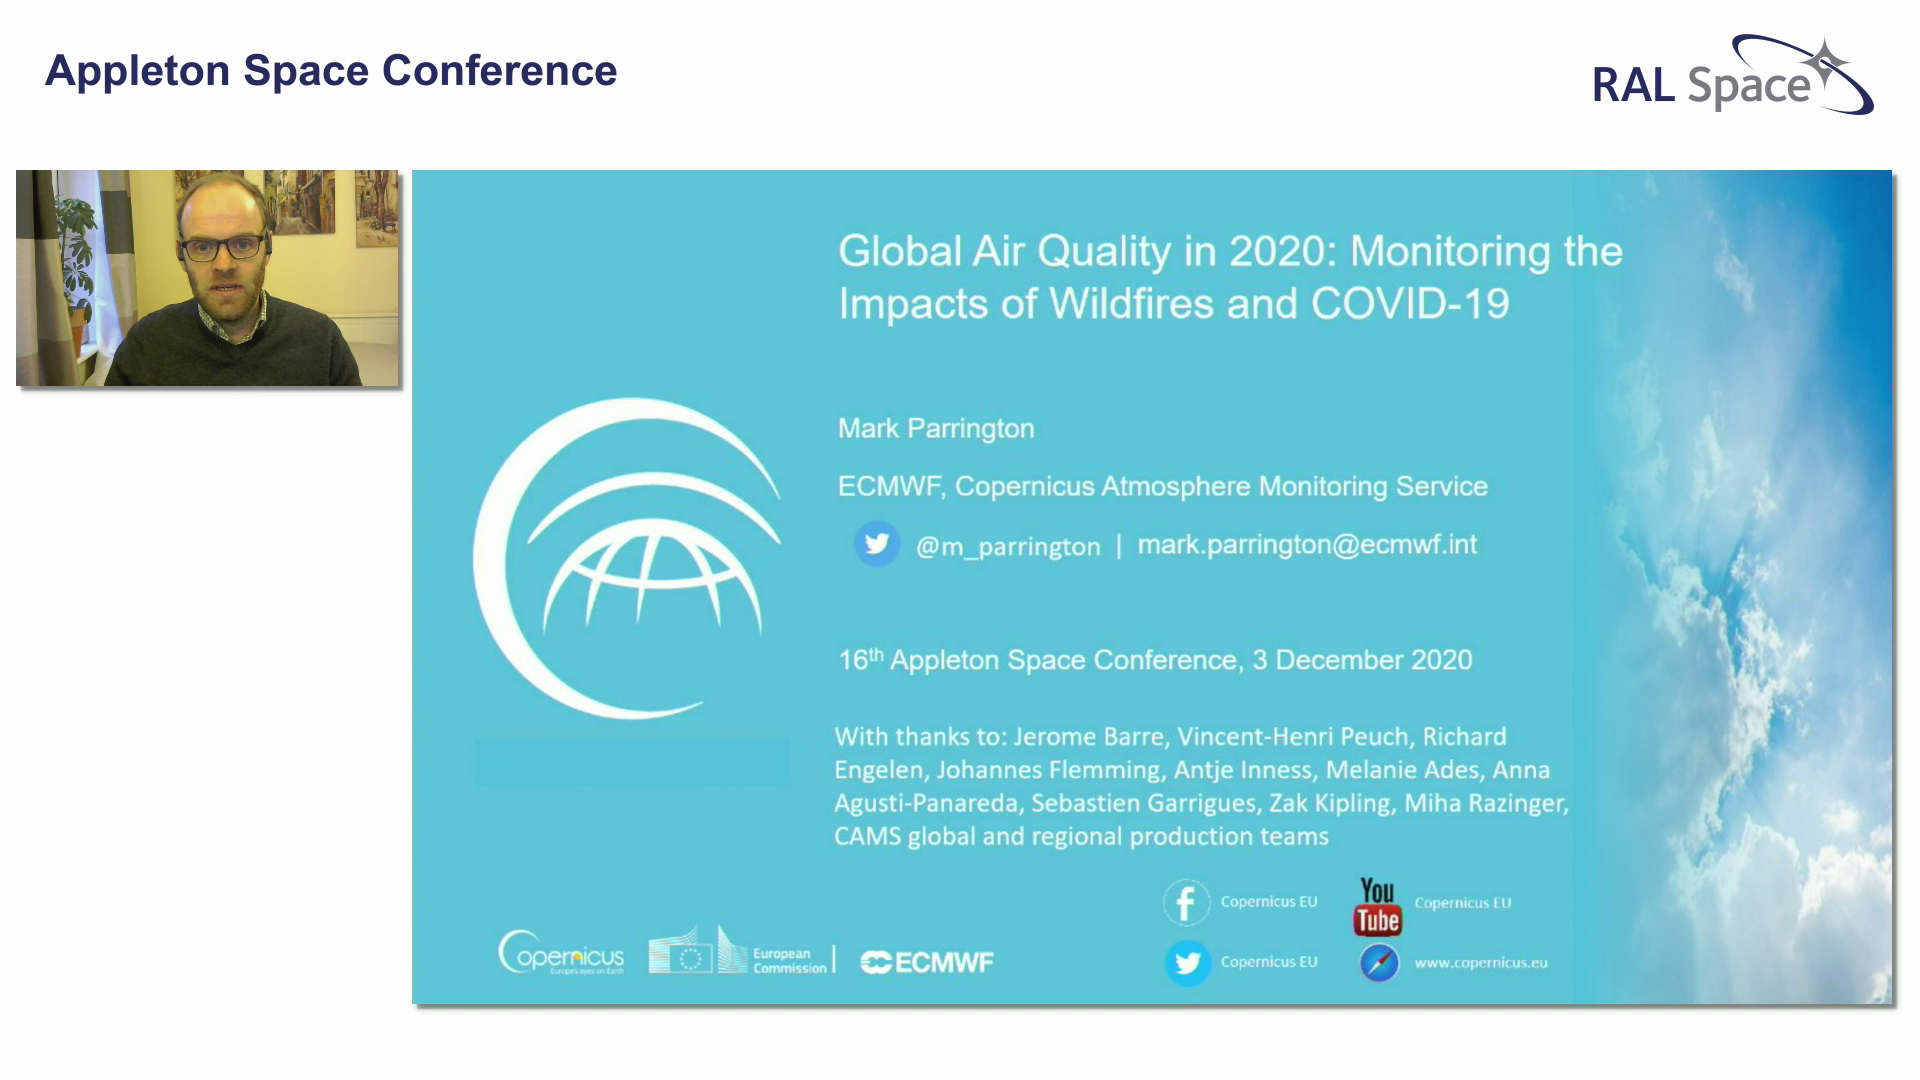 16 Global Air Quality in 2020 Monitoring the Impacts of Wildfires and COVID-19 v2 HQ.png